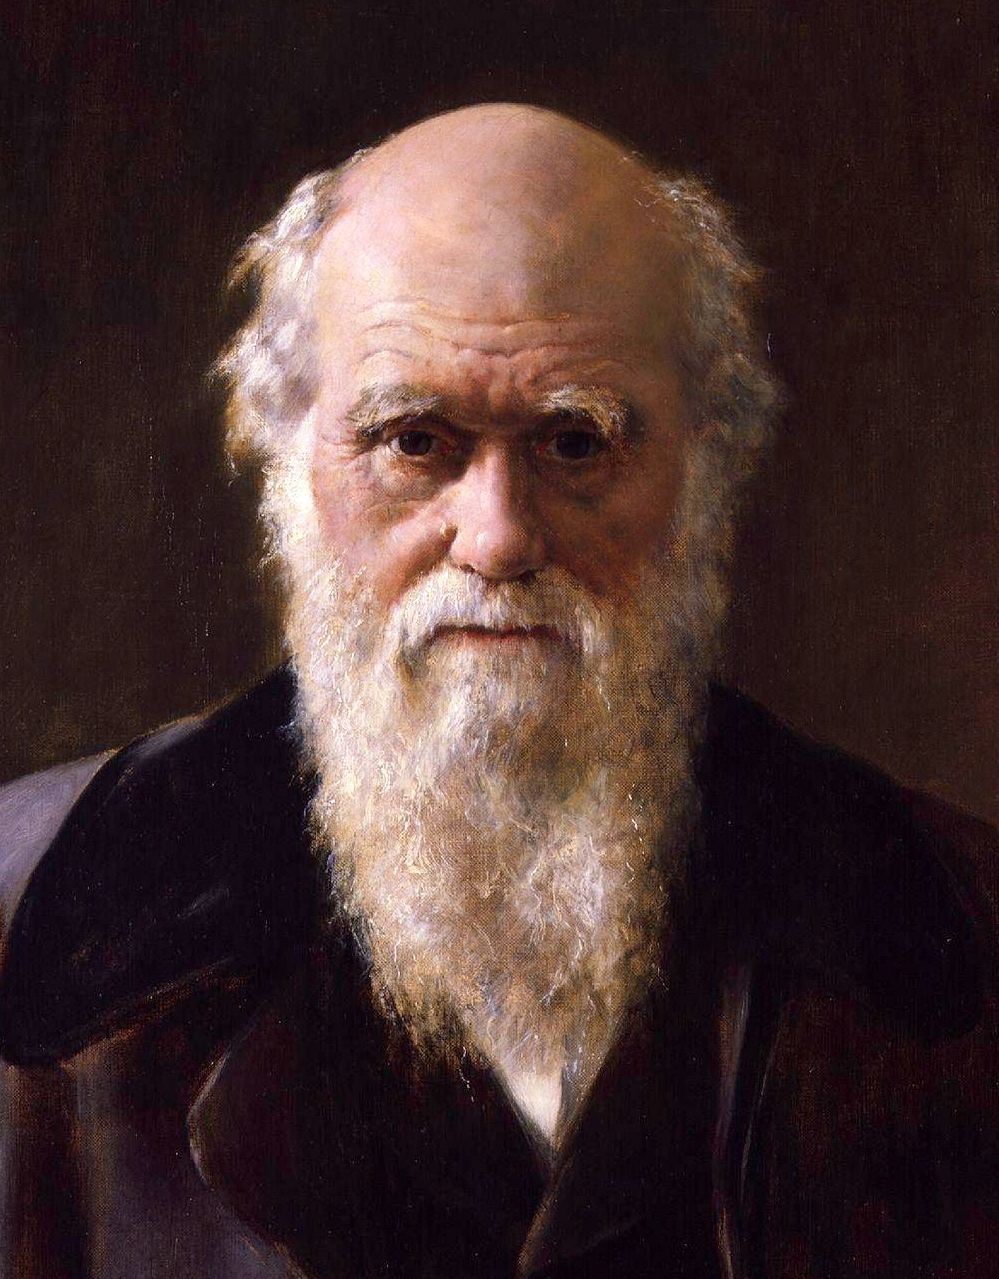 charles robert darwin by john collier c 1881 1883 people i charles robert darwin by john collier c 1881 1883